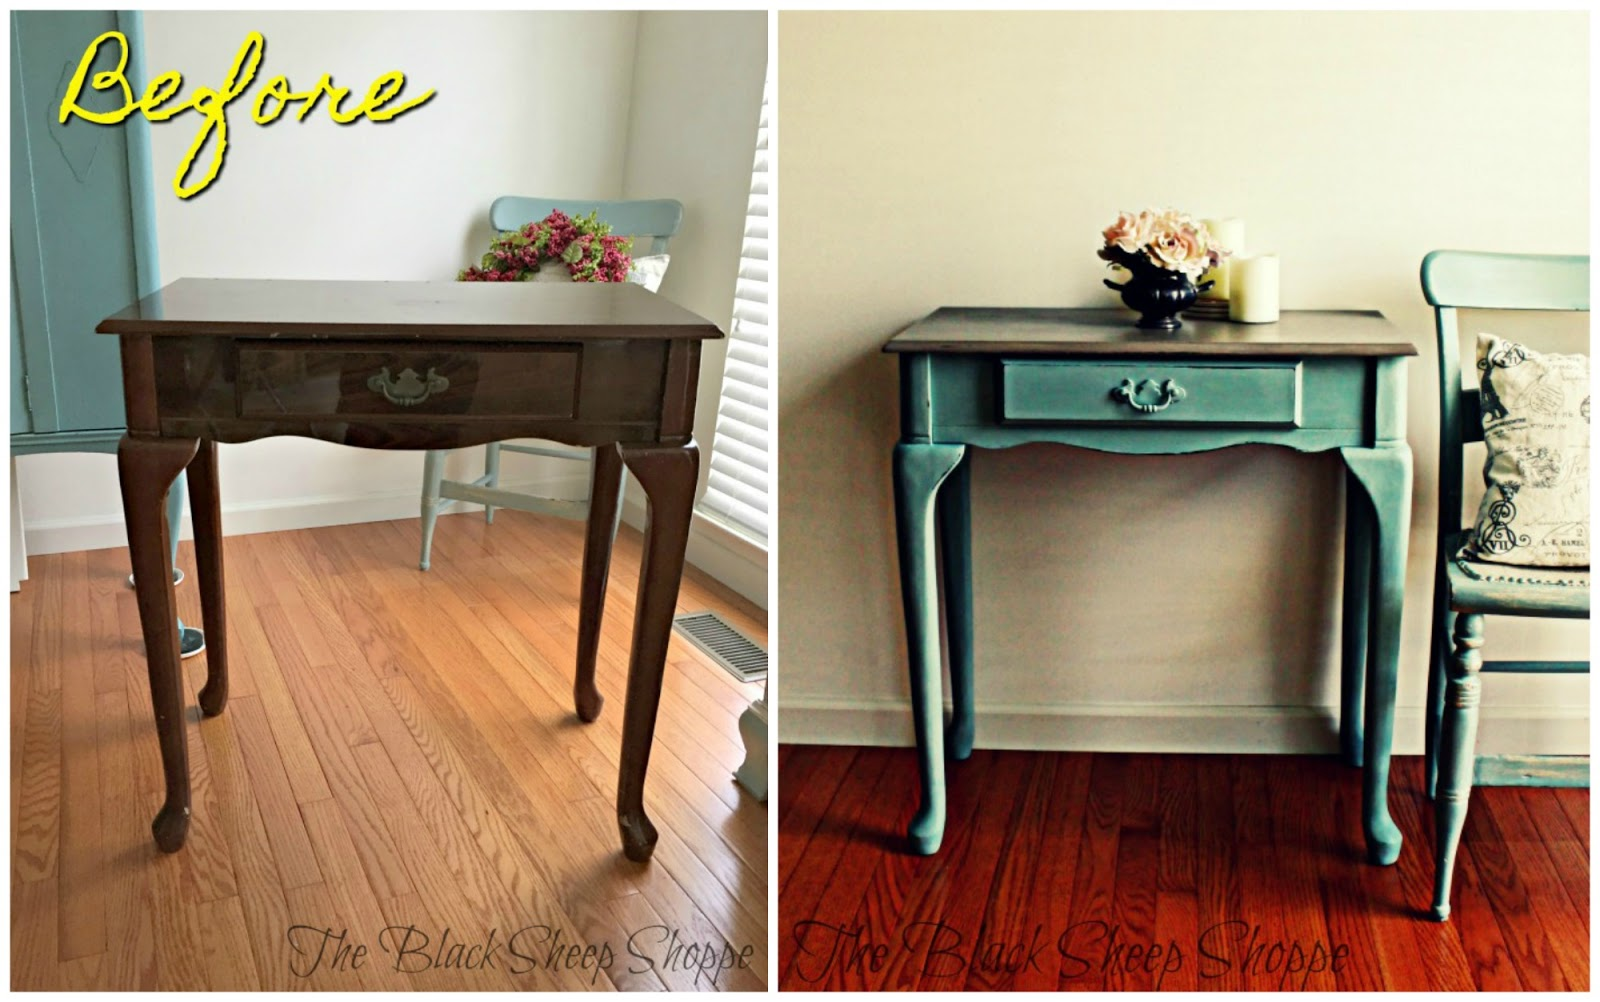 Before and after make up vanity.